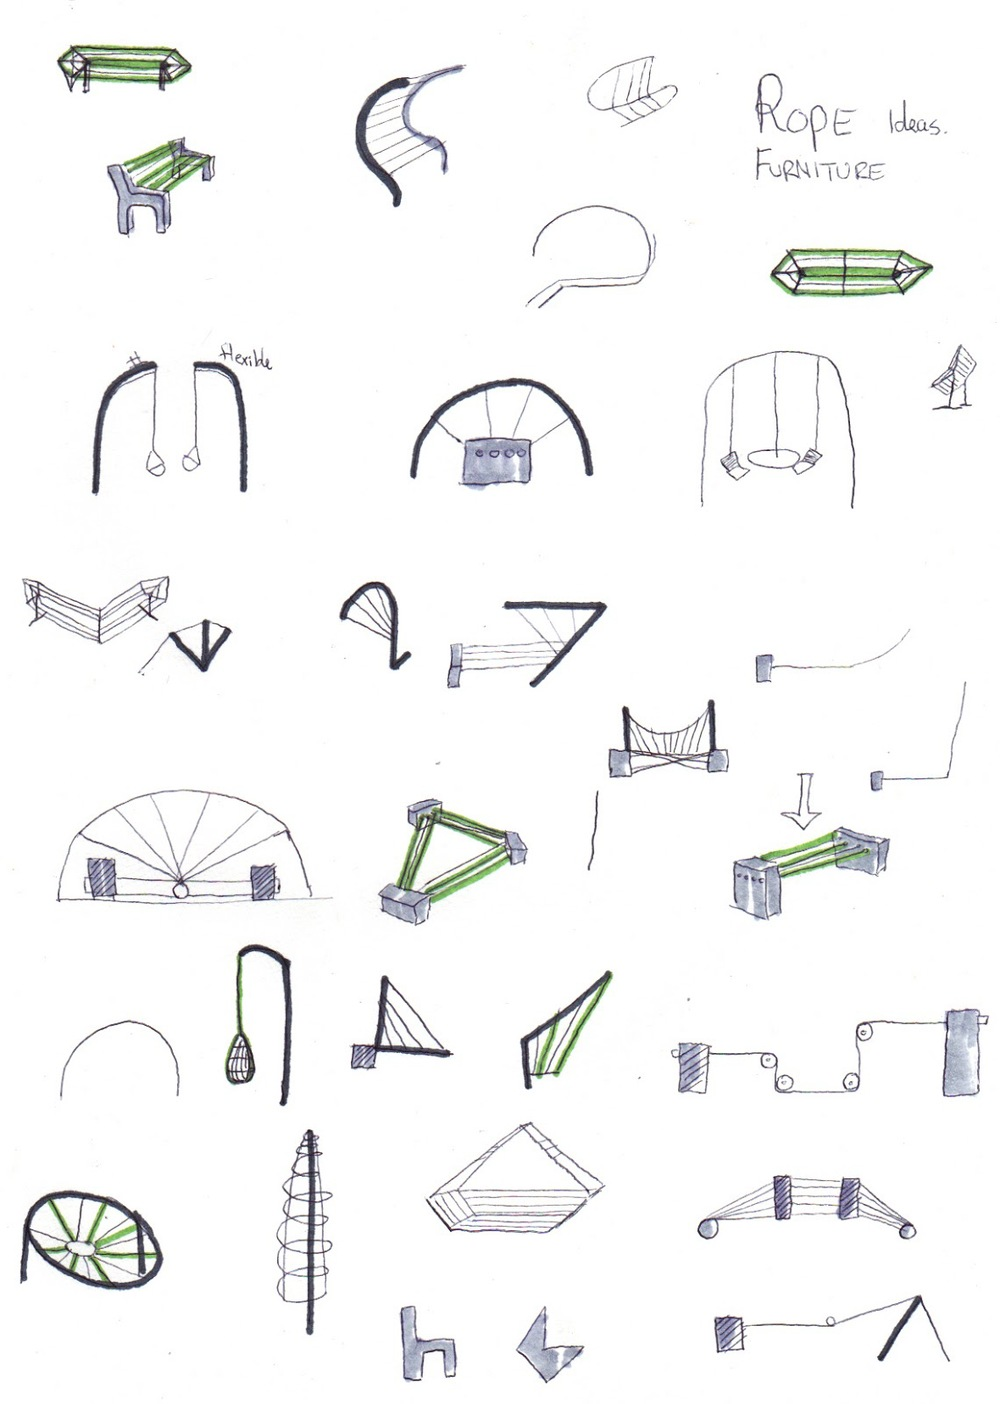 Initial 'rope chair' concepts